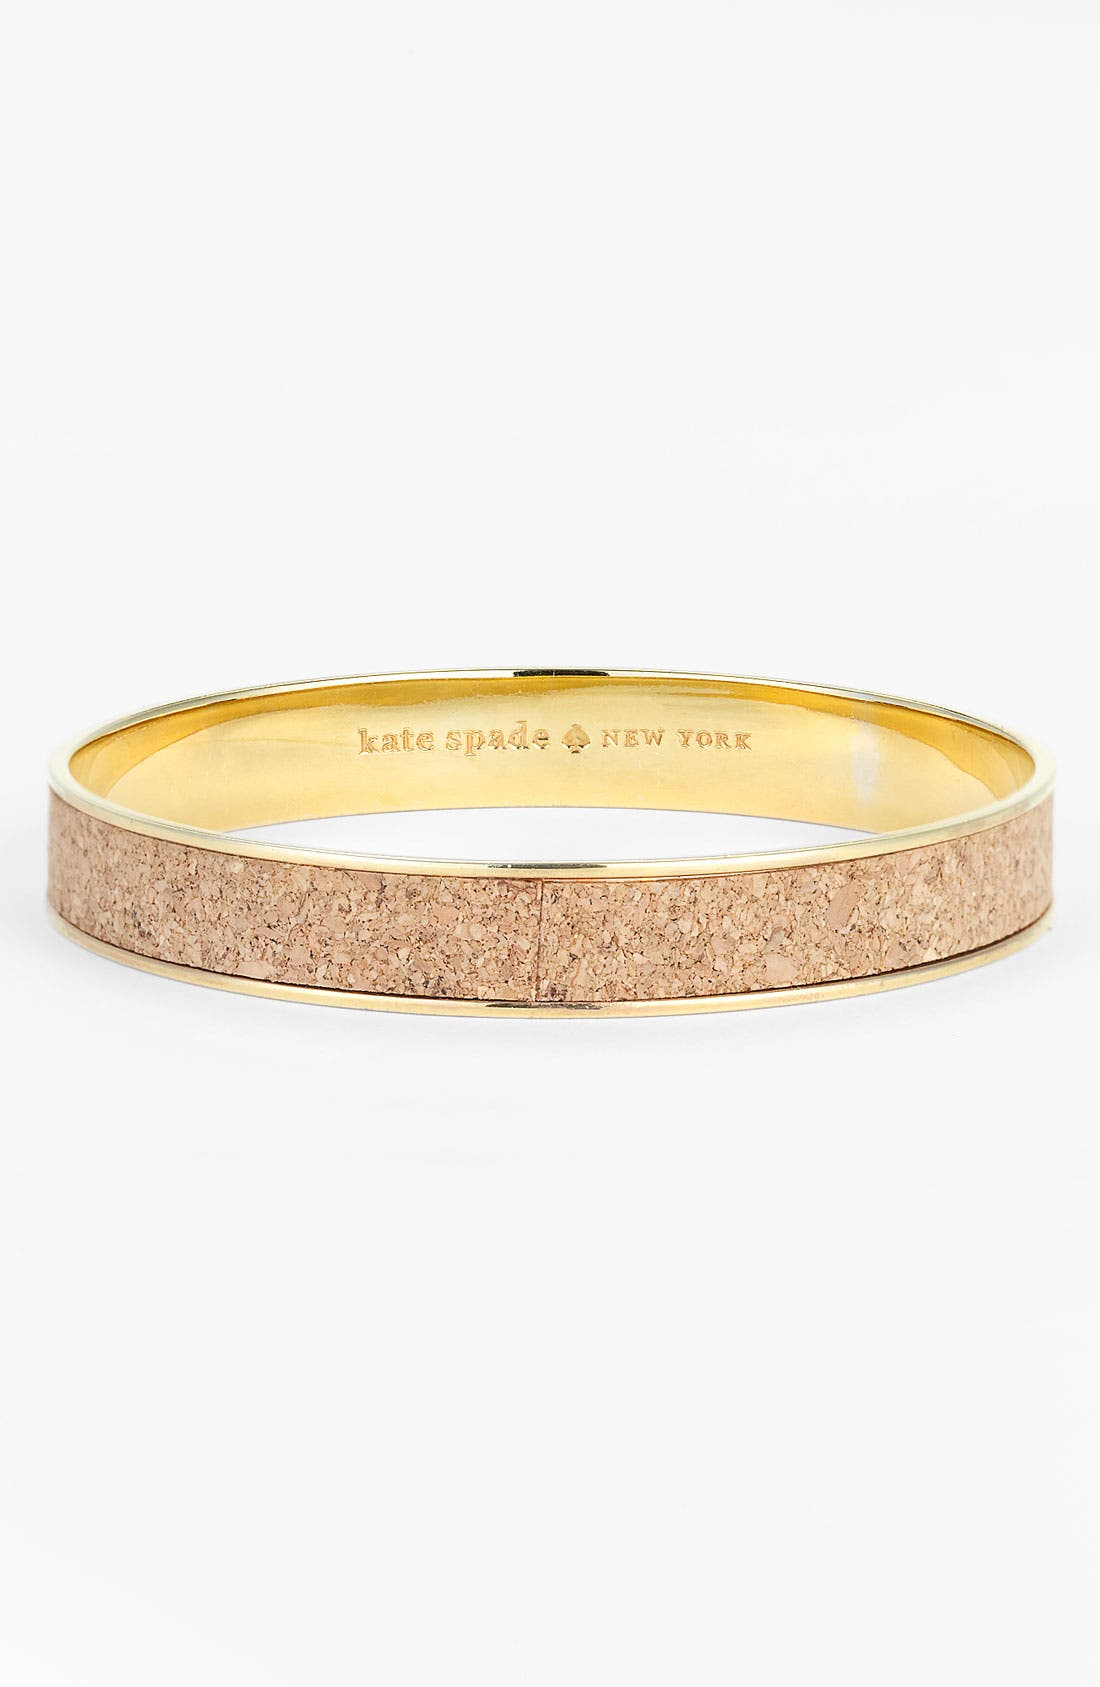 Main Image - kate spade new york 'cork city' bangle